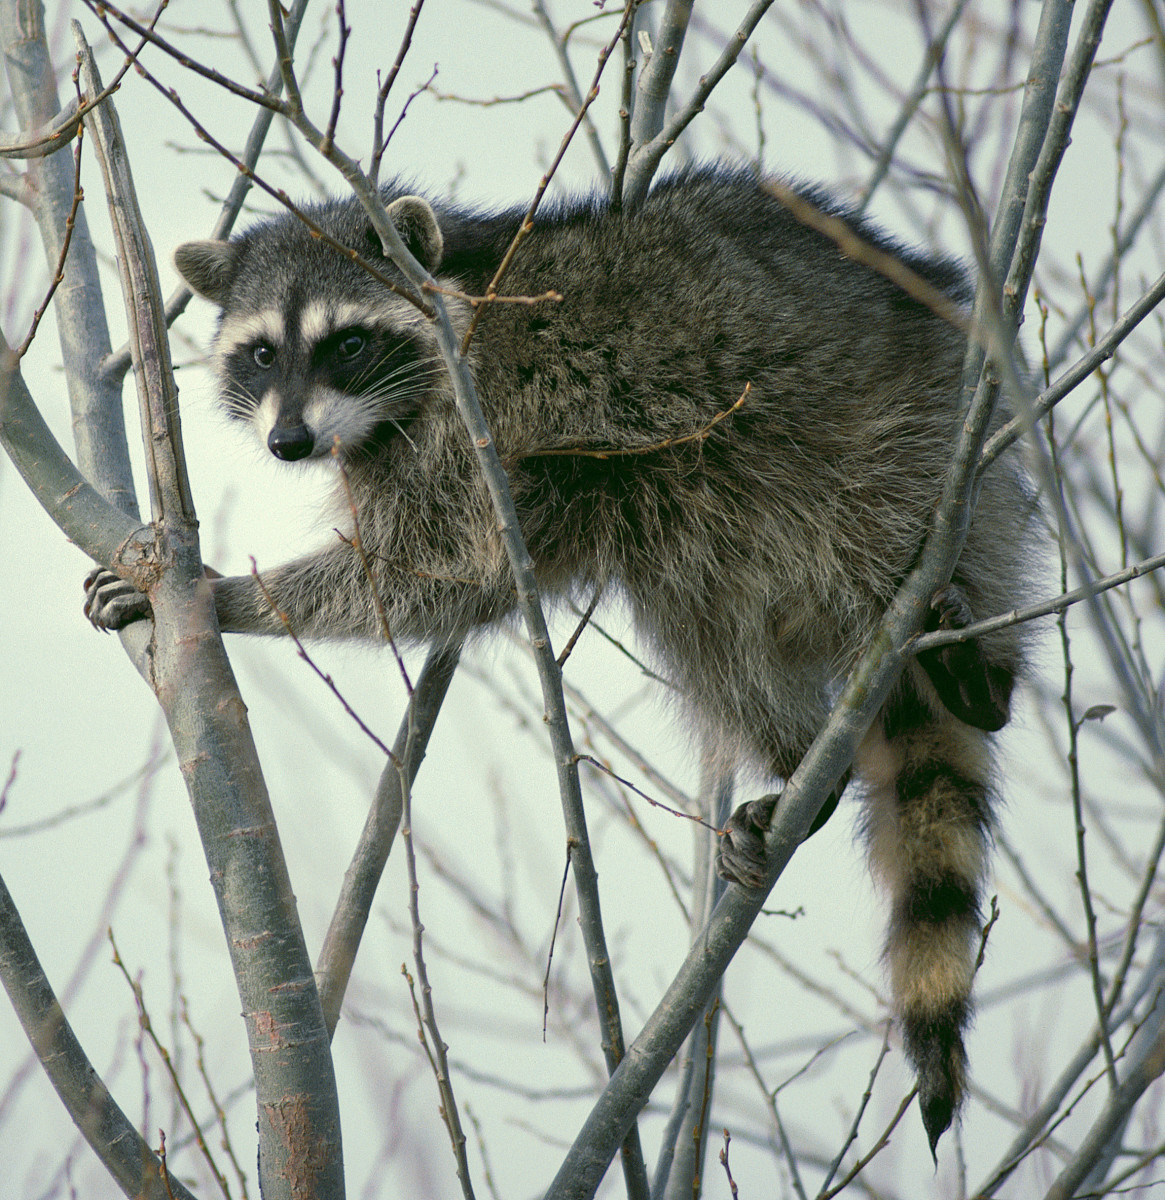 Raccoons are clever predators that may prove difficult to keep out of your coop and run.